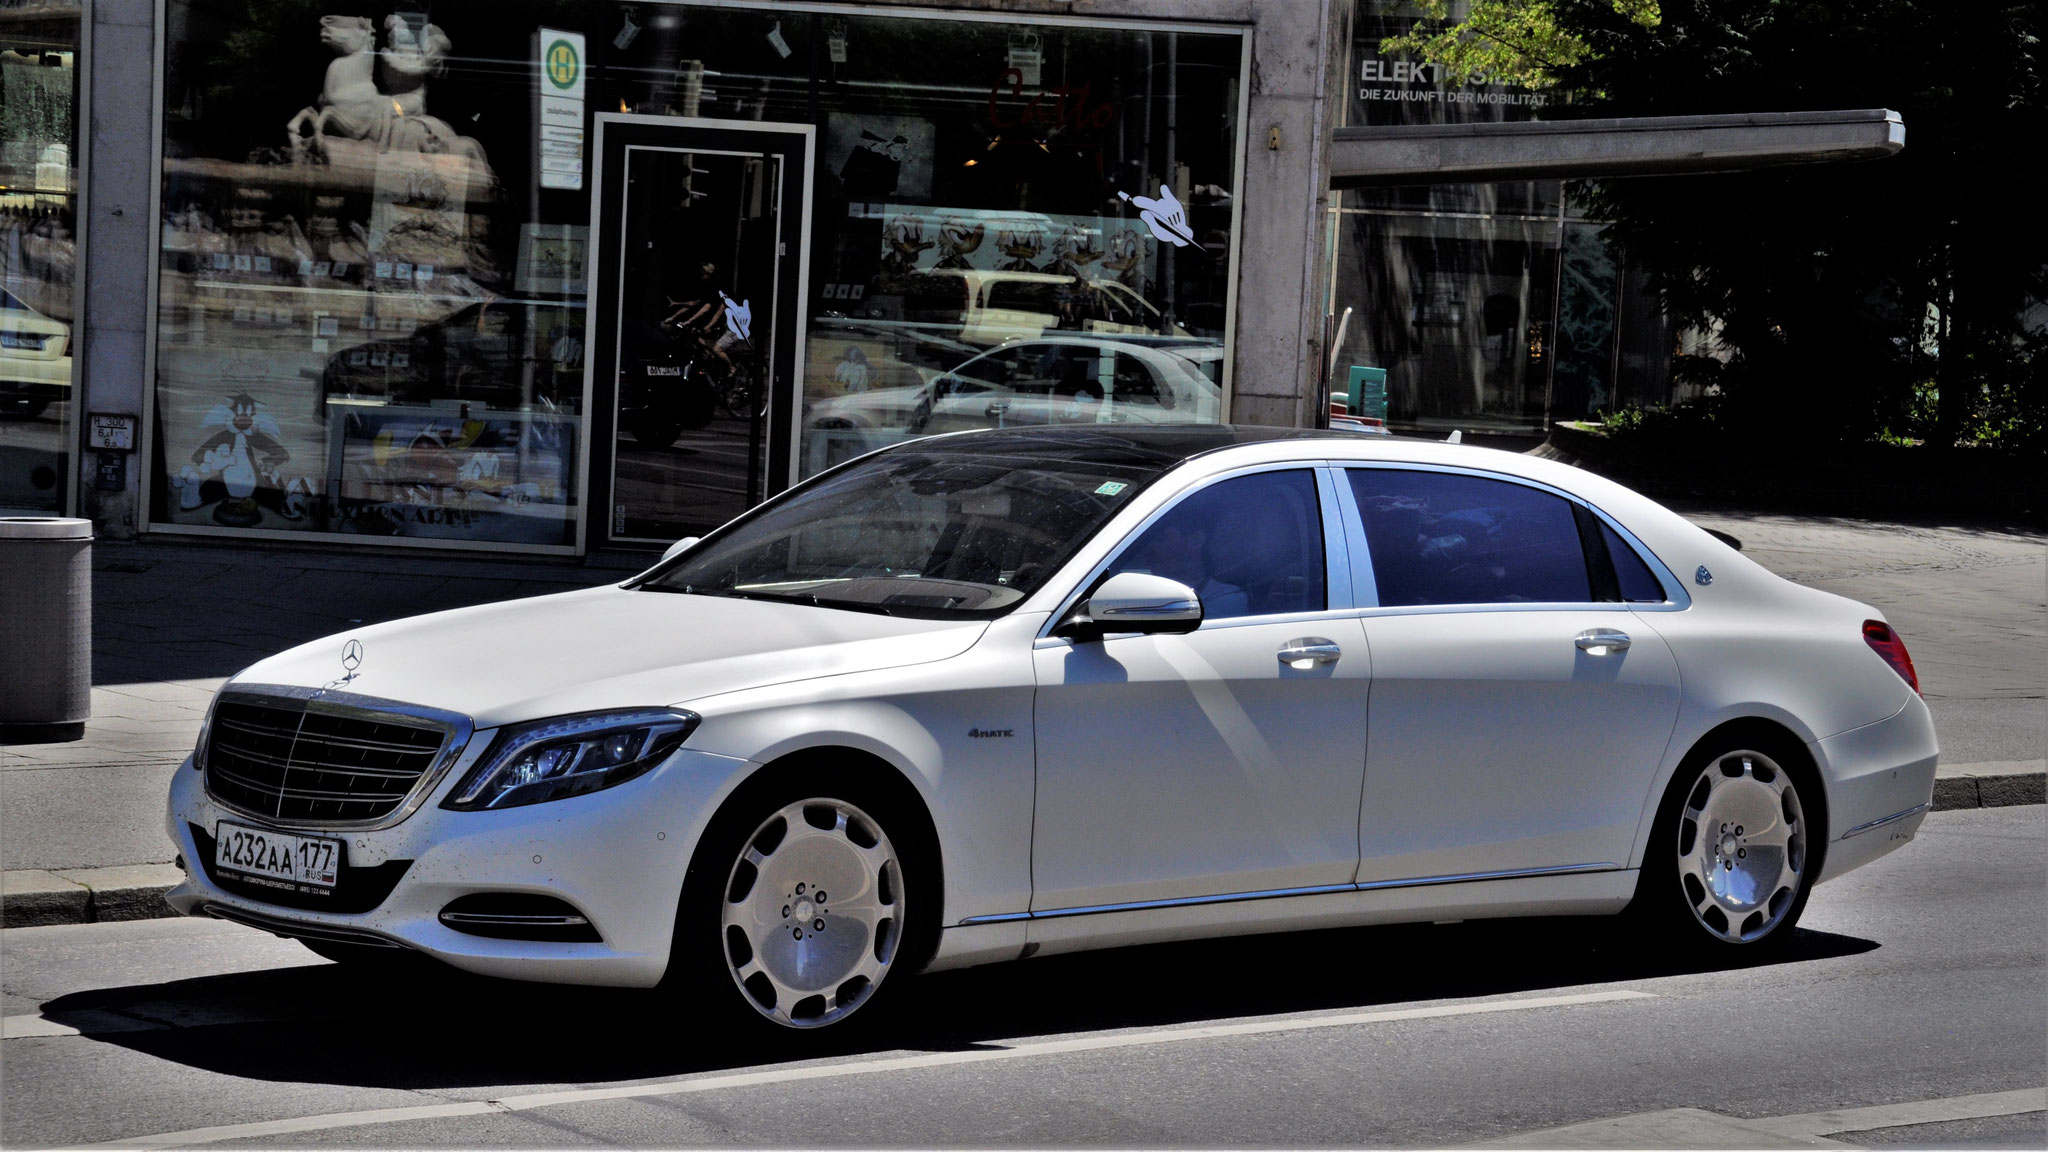 Mercedes Maybach S500 - A-232-AA-177 (RUS)